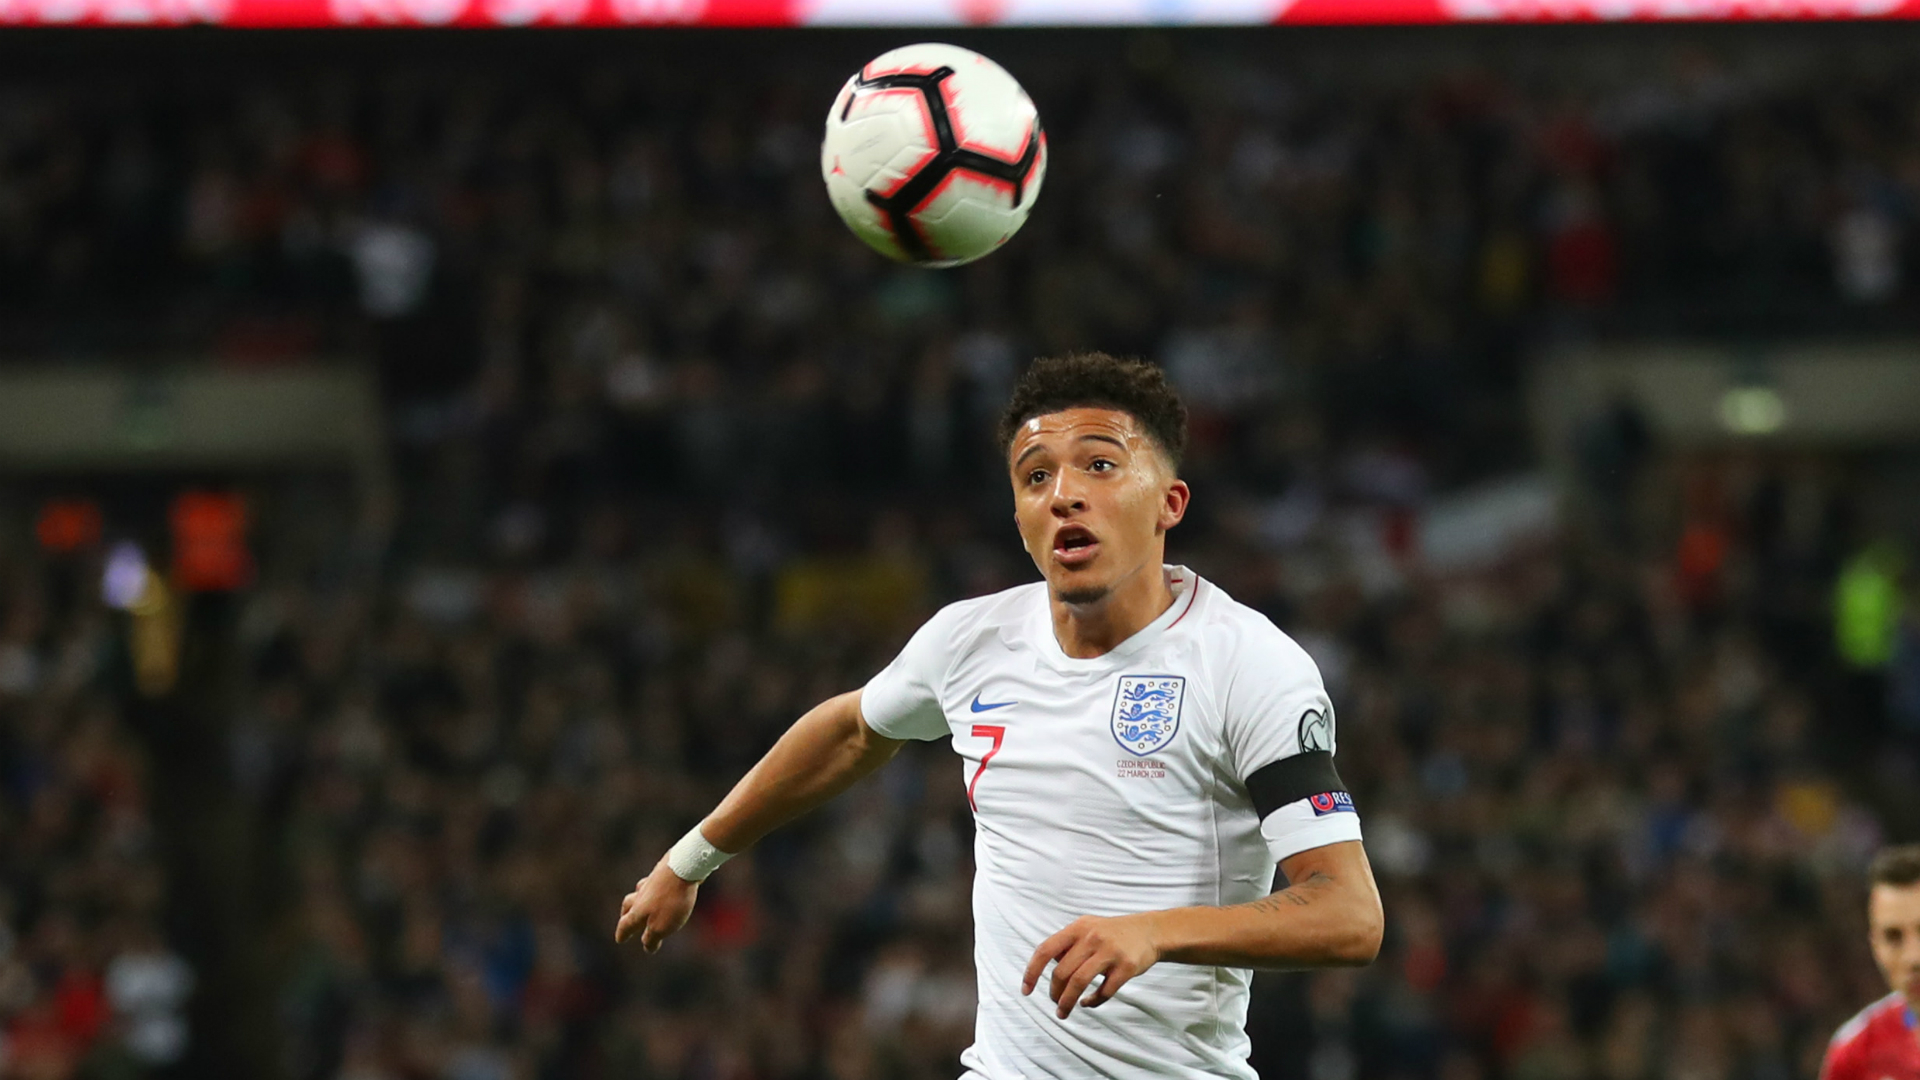 Nations League Finals: Tomorrow's heroes await step into the unknown